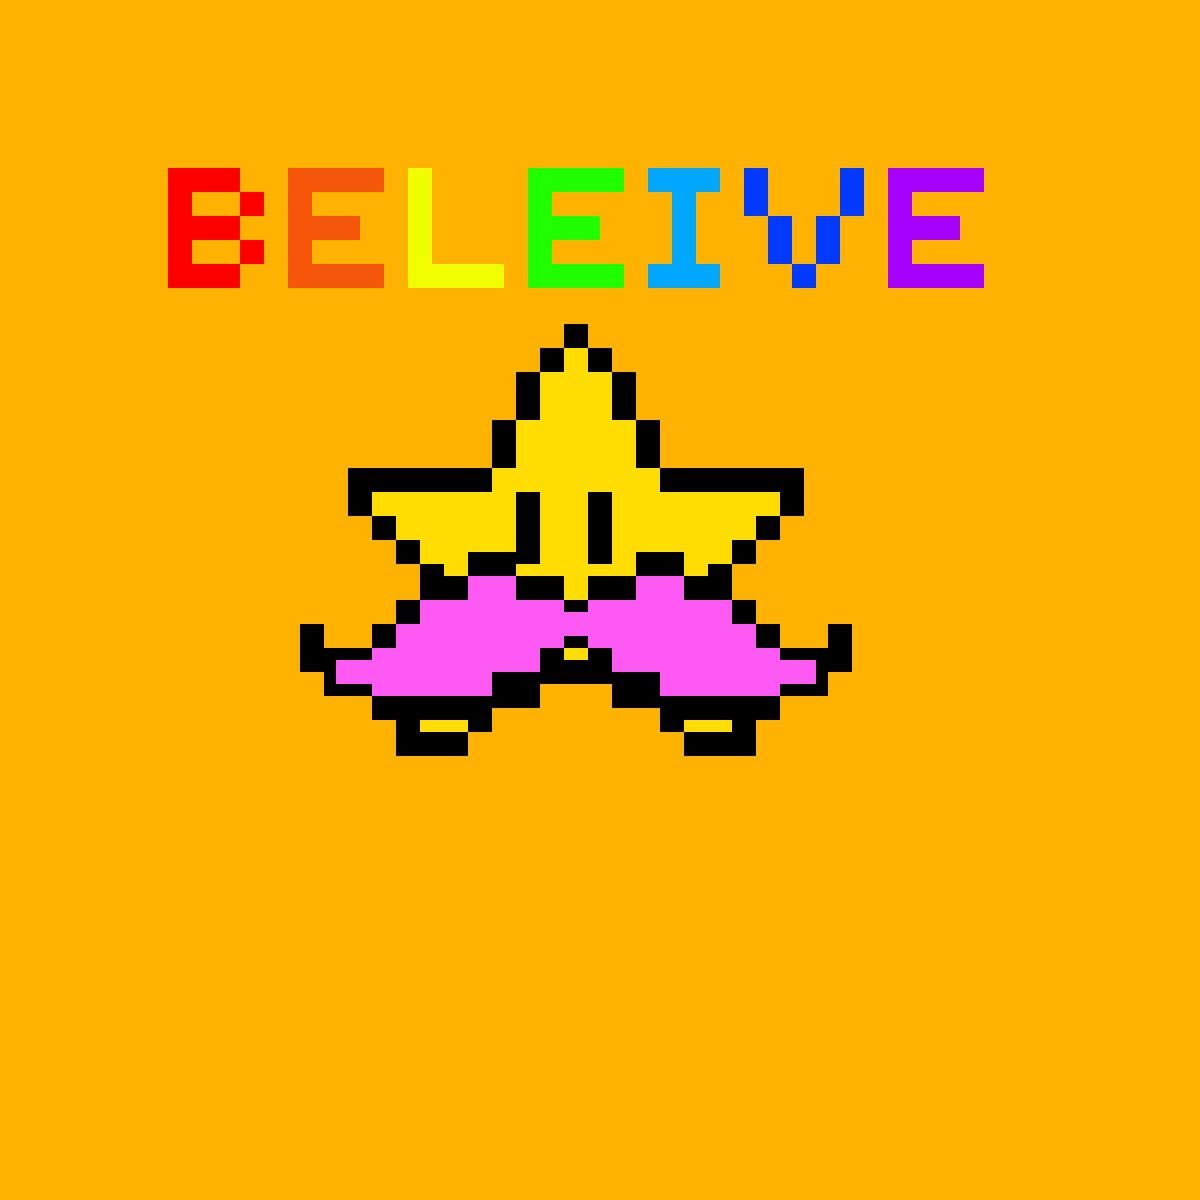 believe by Kitkat5706